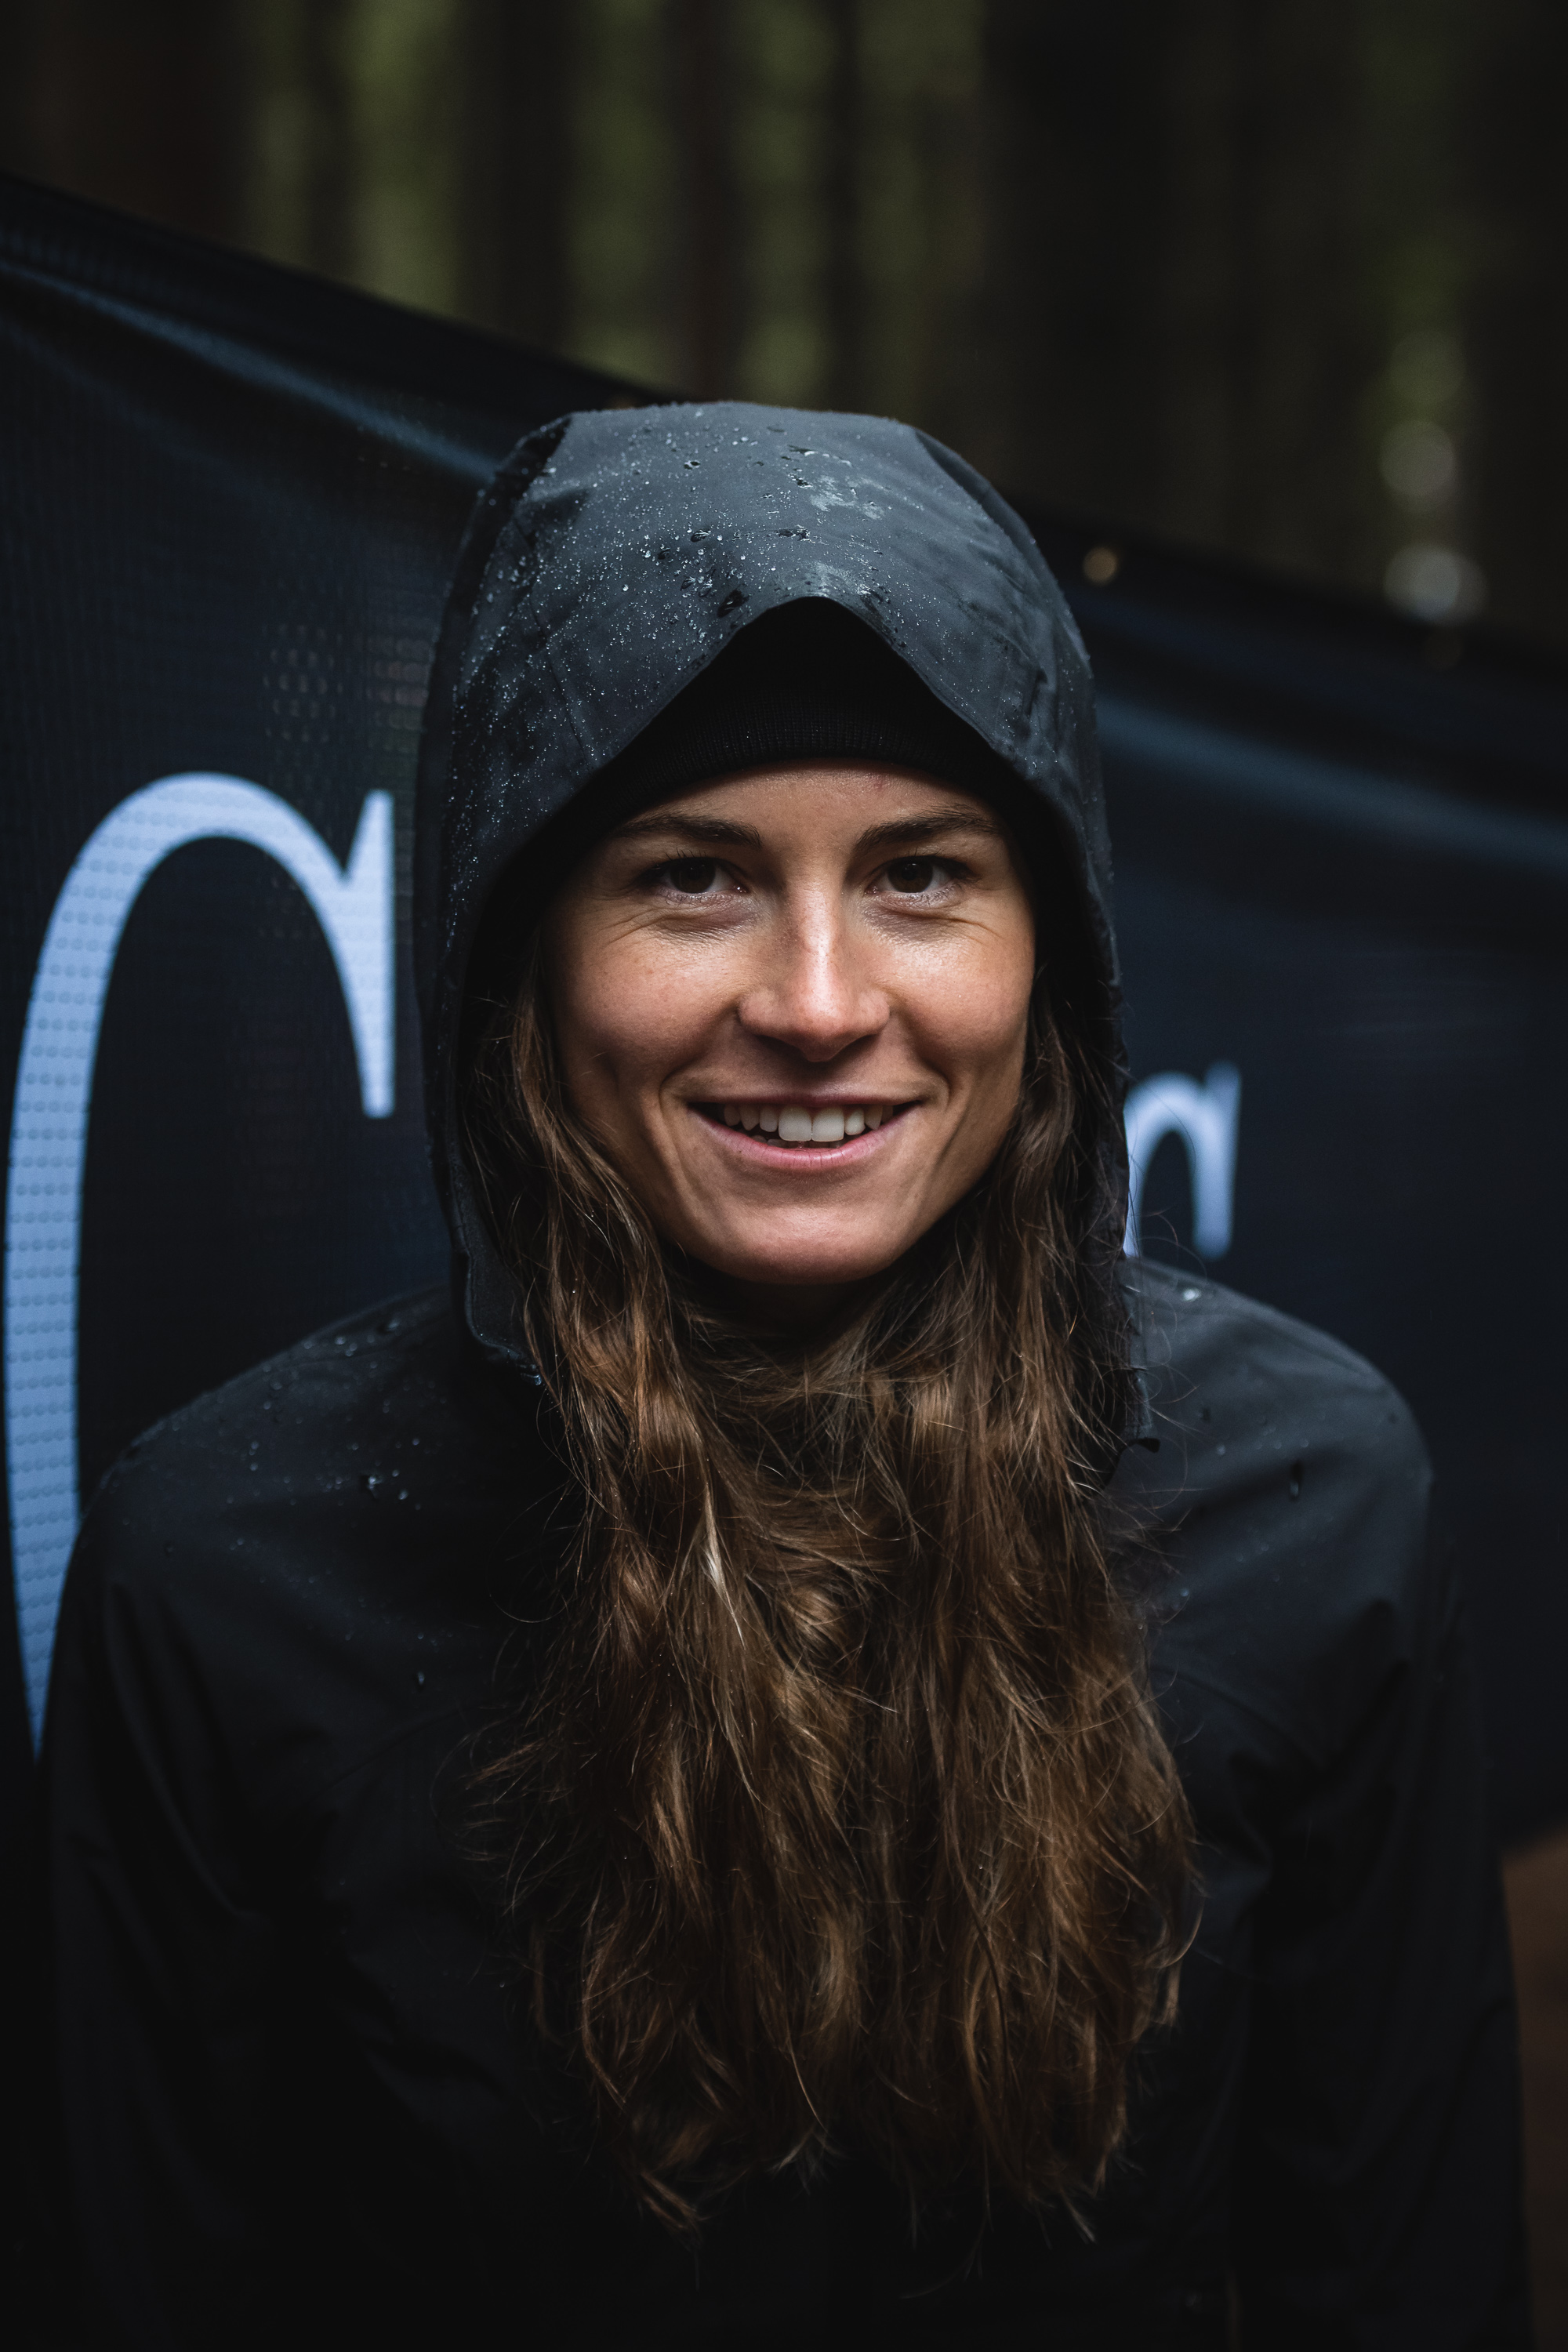 Canyon MTB Racing's Physiotherapist Theresa Rindler Shares Some Tips and Tricks